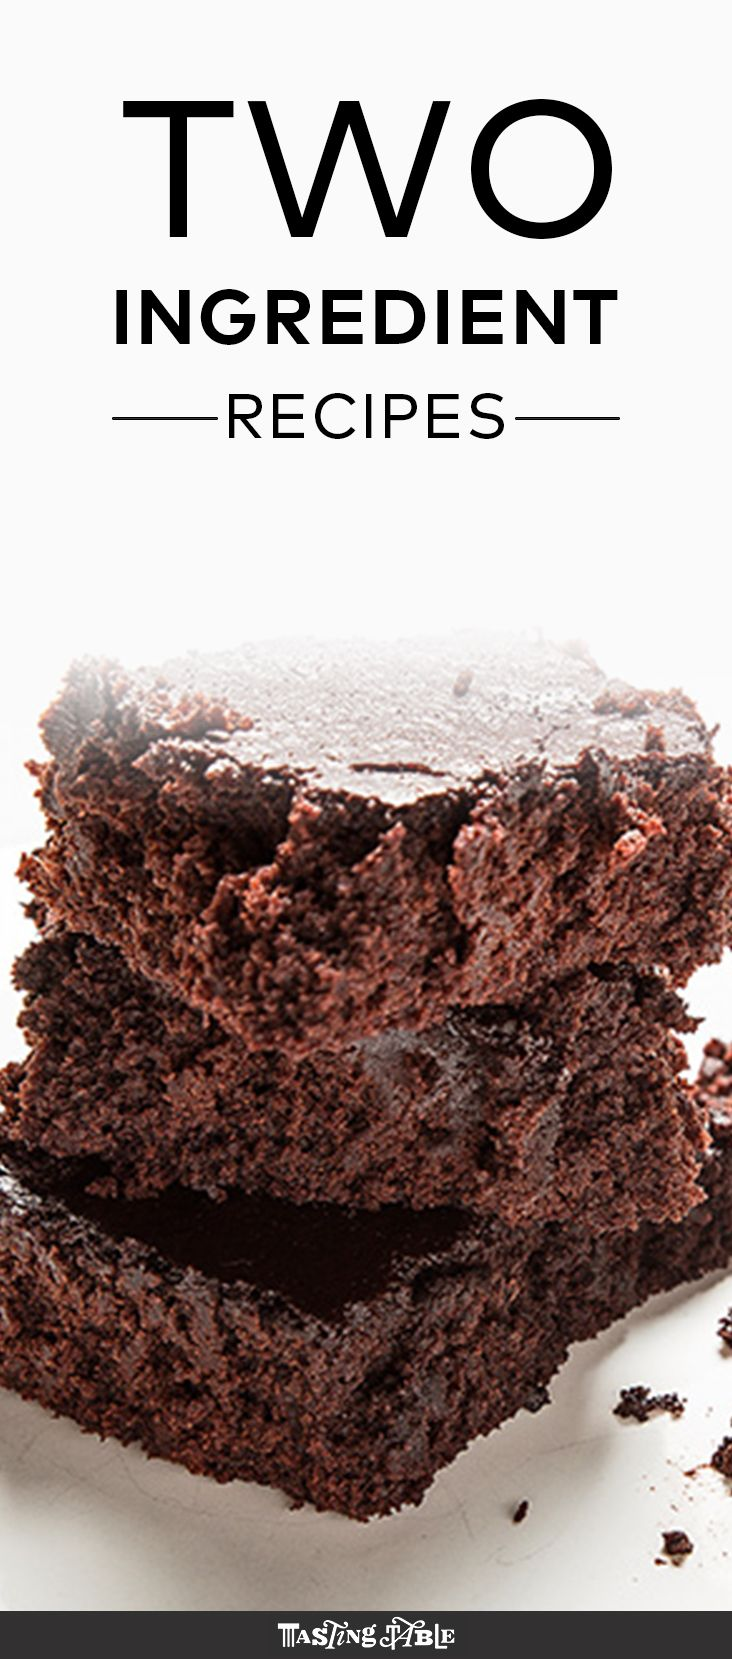 two ingredient recipes two ingredient cakes baking desserts easy ...